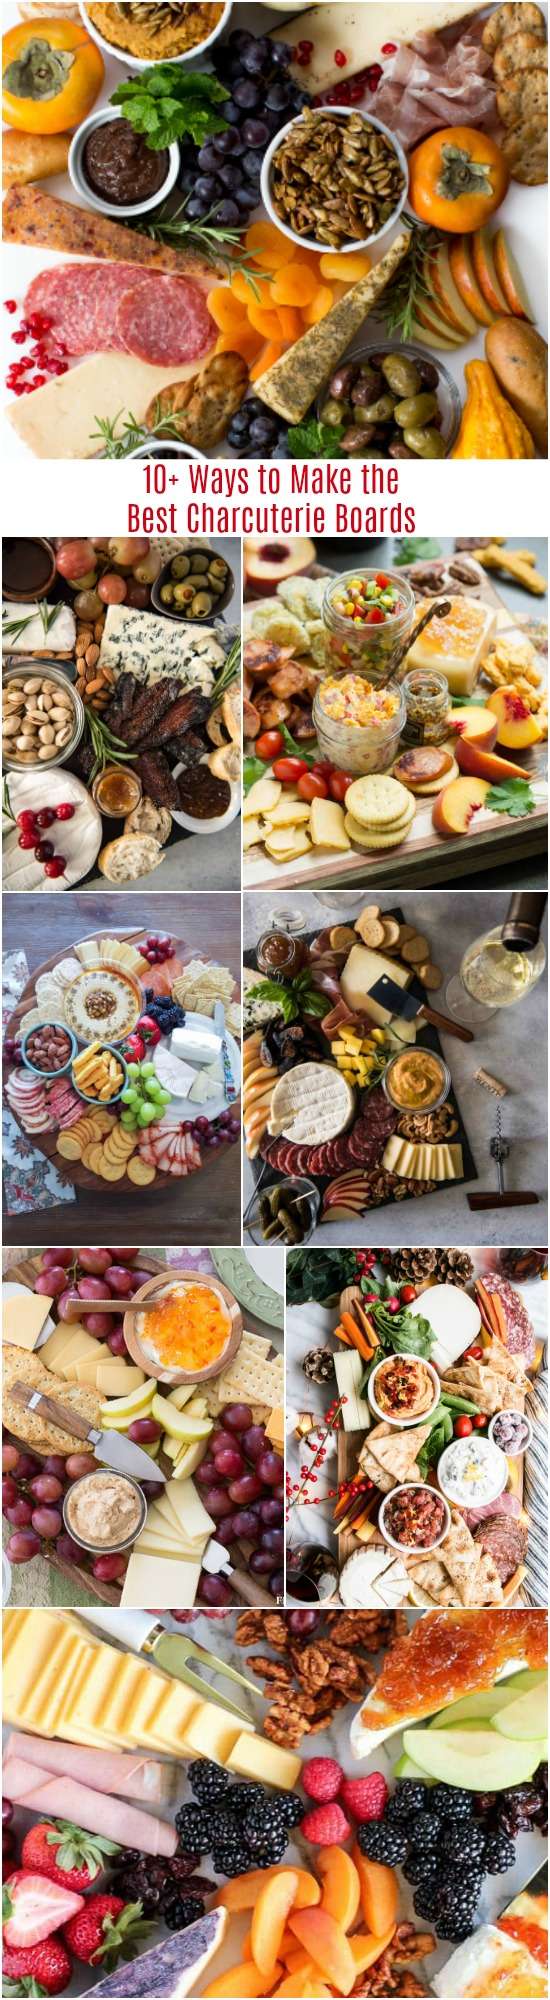 10+ Ways to Make the Best Charcuterie Boards - There always seem to be game day parties, family gatherings, and cocktail soiree's every few weeks regardless of the time of year. Cheese and Charcuterie Boards are my go-to, easy trick for stress-free entertaining.